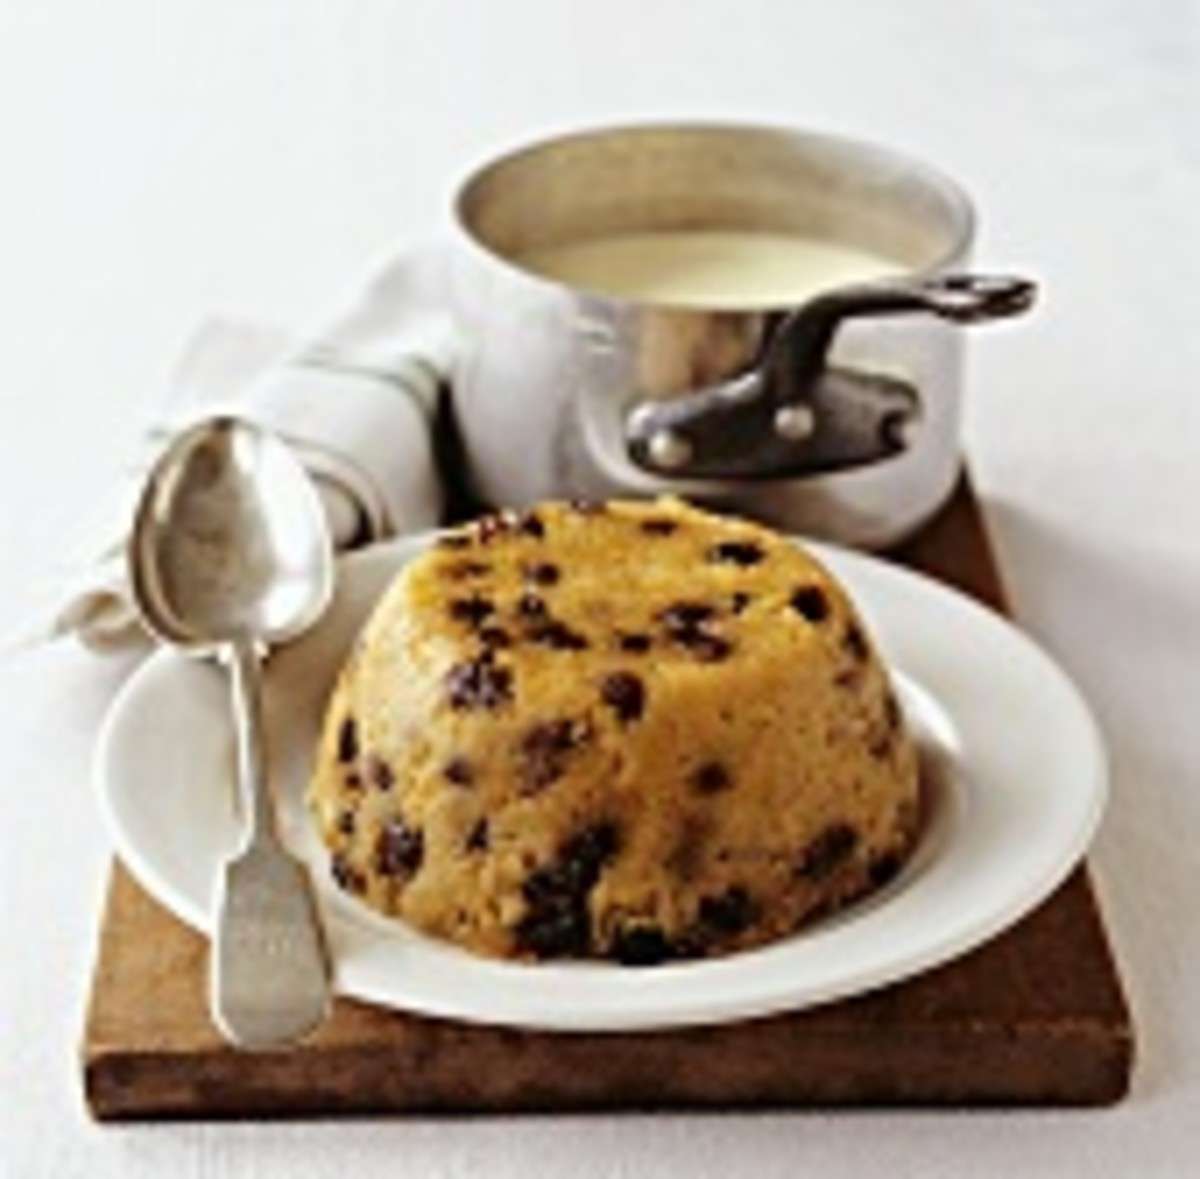 Traditional Spotted Dick pudding with real English Custard recipes. A delicious taste of old England.